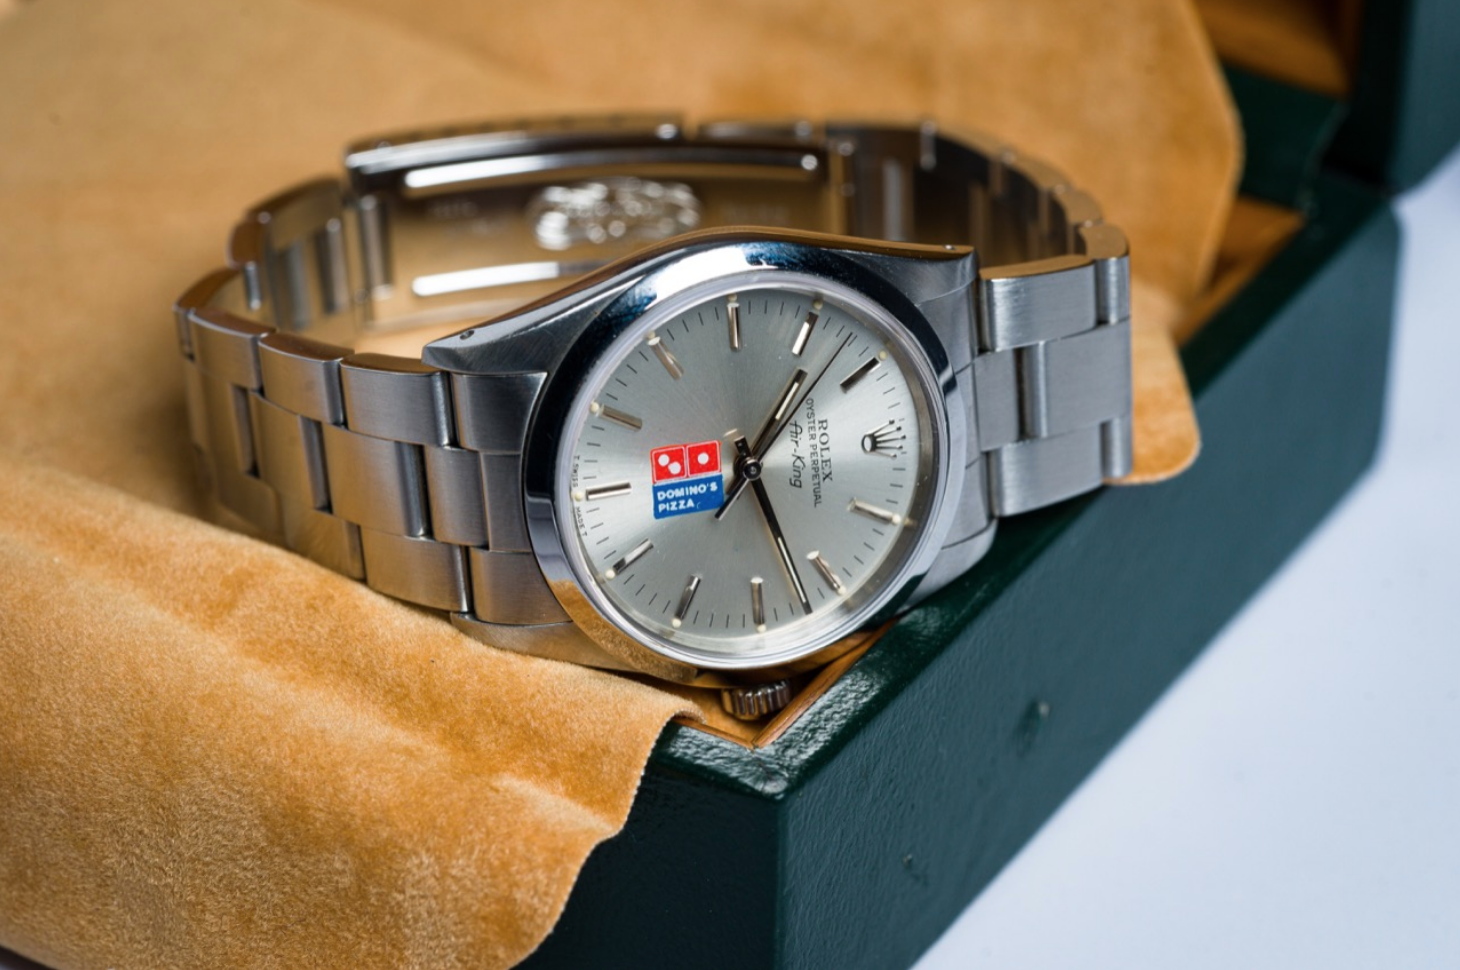 Dominos Pizza Special Edition Rolex Air-King